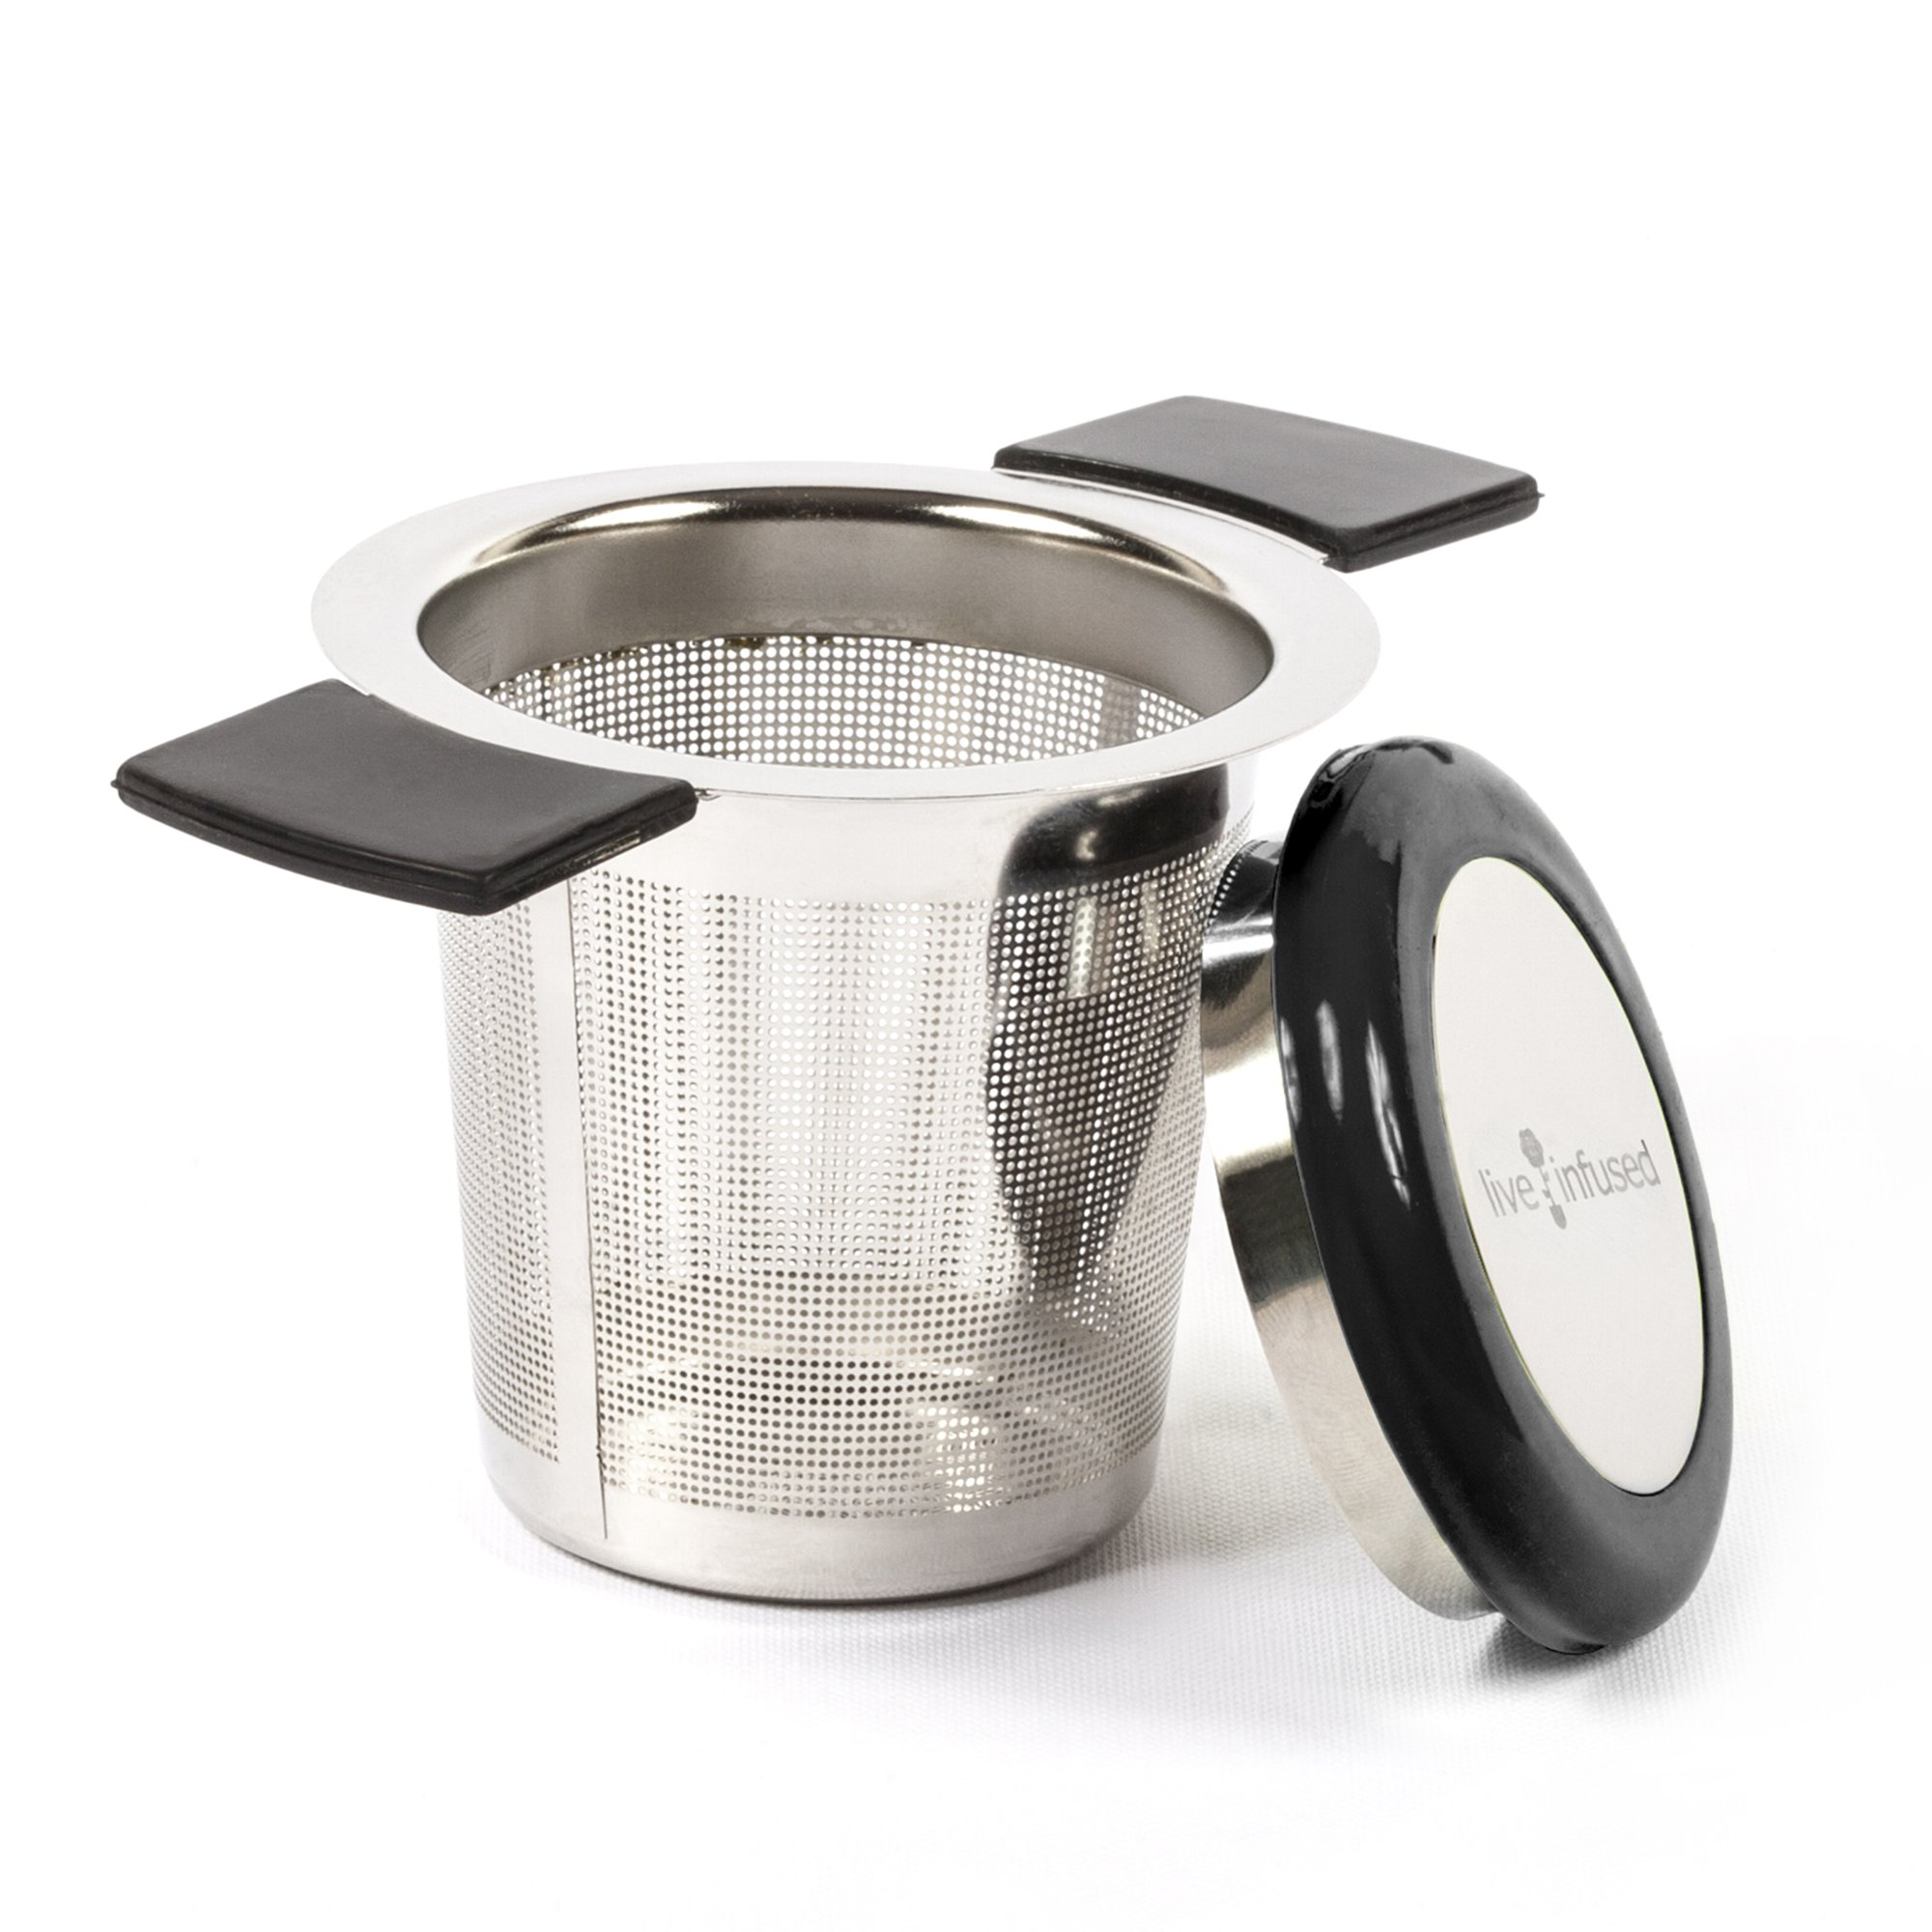 Large Capacity Stainless Steel Tea Infuser by Live Infused - Silicone Covers Handles & Lid Prevent Burns, Spills (Black) by Live Infused